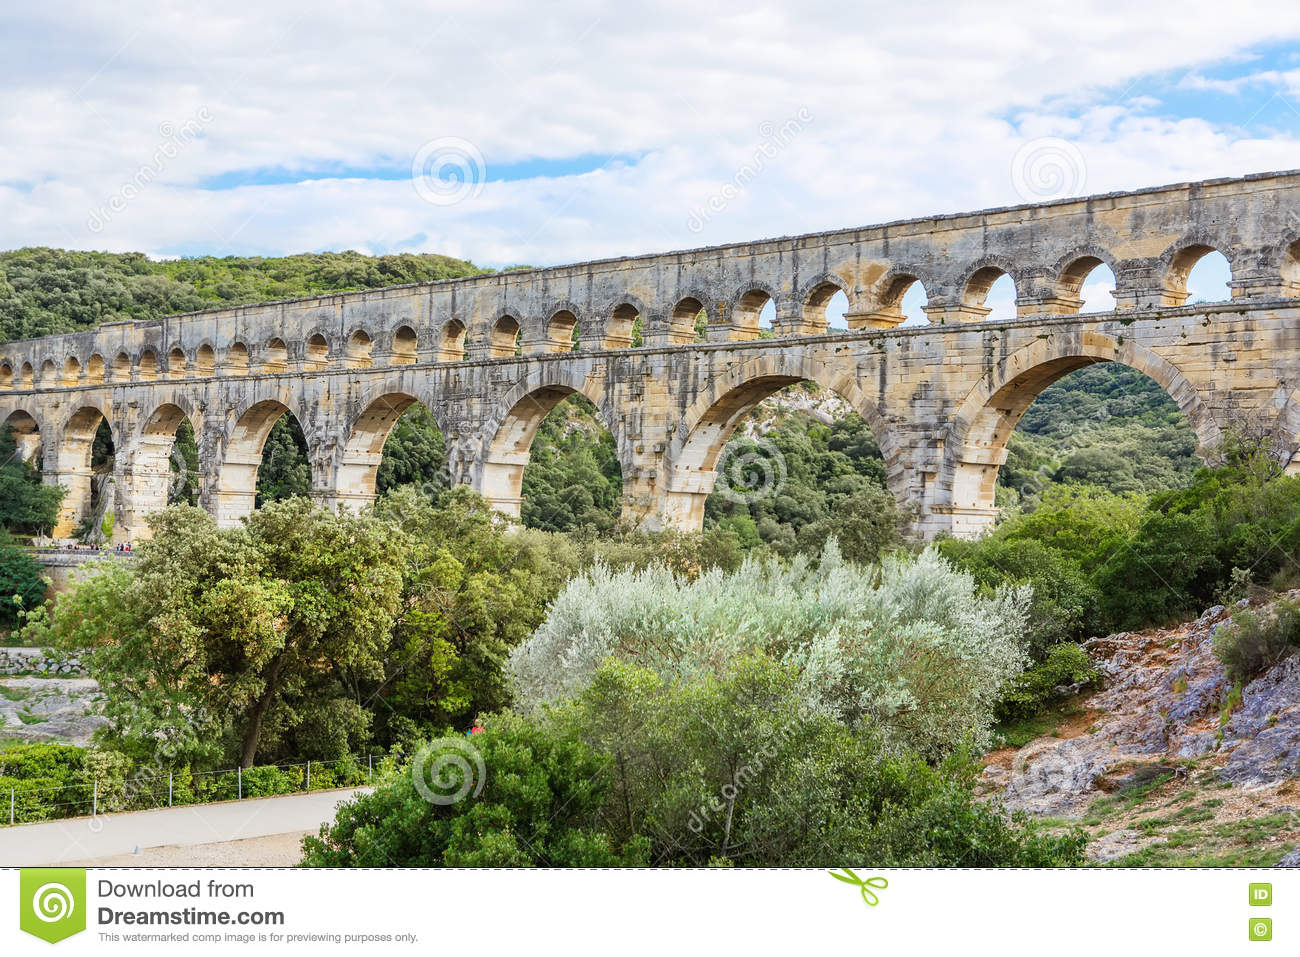 an introduction to the pont du gard a roman aqueduct Your first experience will be a guided visit of the famous roman aqueduct, pont du gard bridge  an essential introduction to the diversity and richness of the.